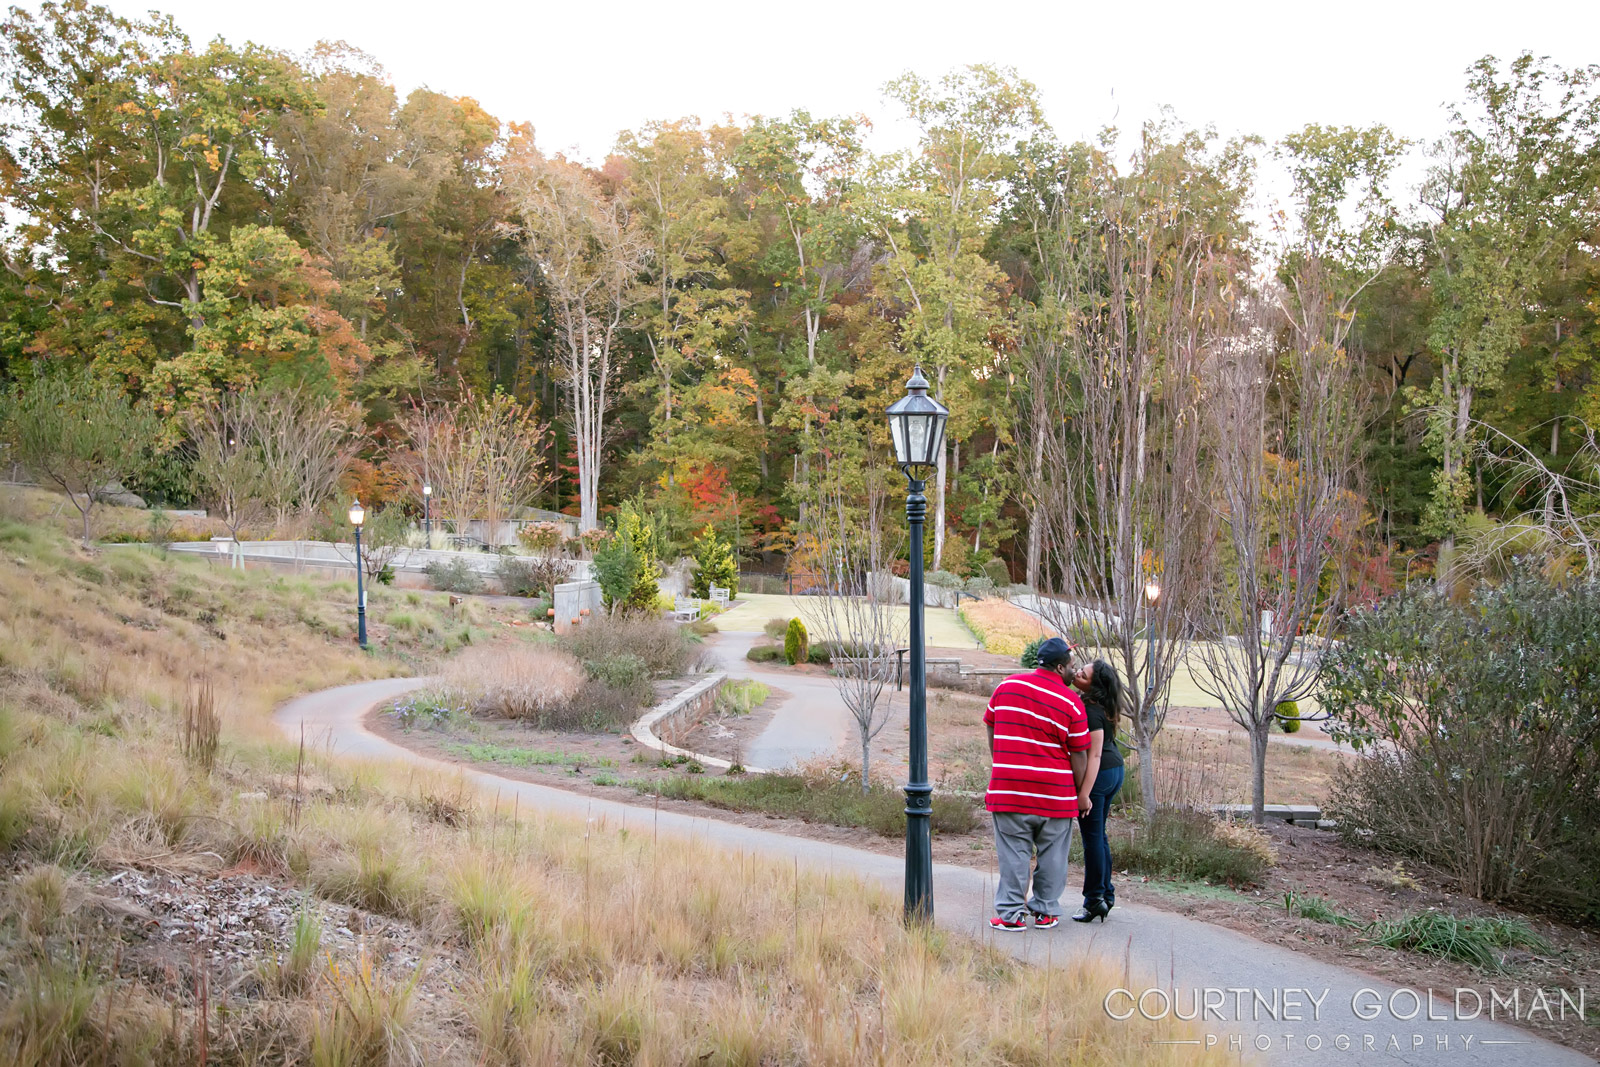 Atlanta-Couples-Engagement-Proposal-Photography-by-Courtney-Goldman-37.jpg